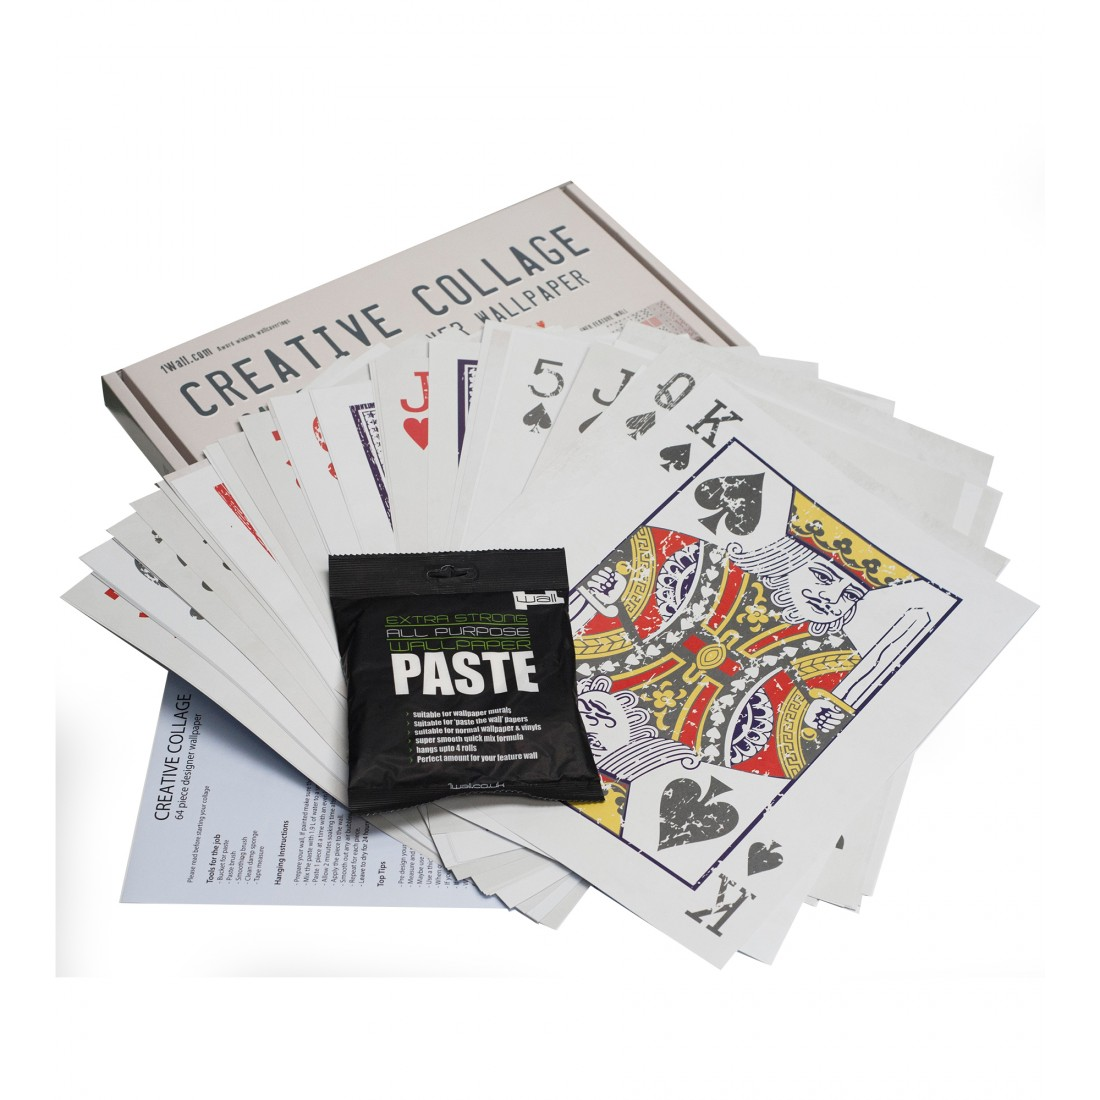 Playing Cards Creative Collage Wallpaper 64 pieces 1Wall 1100x1100